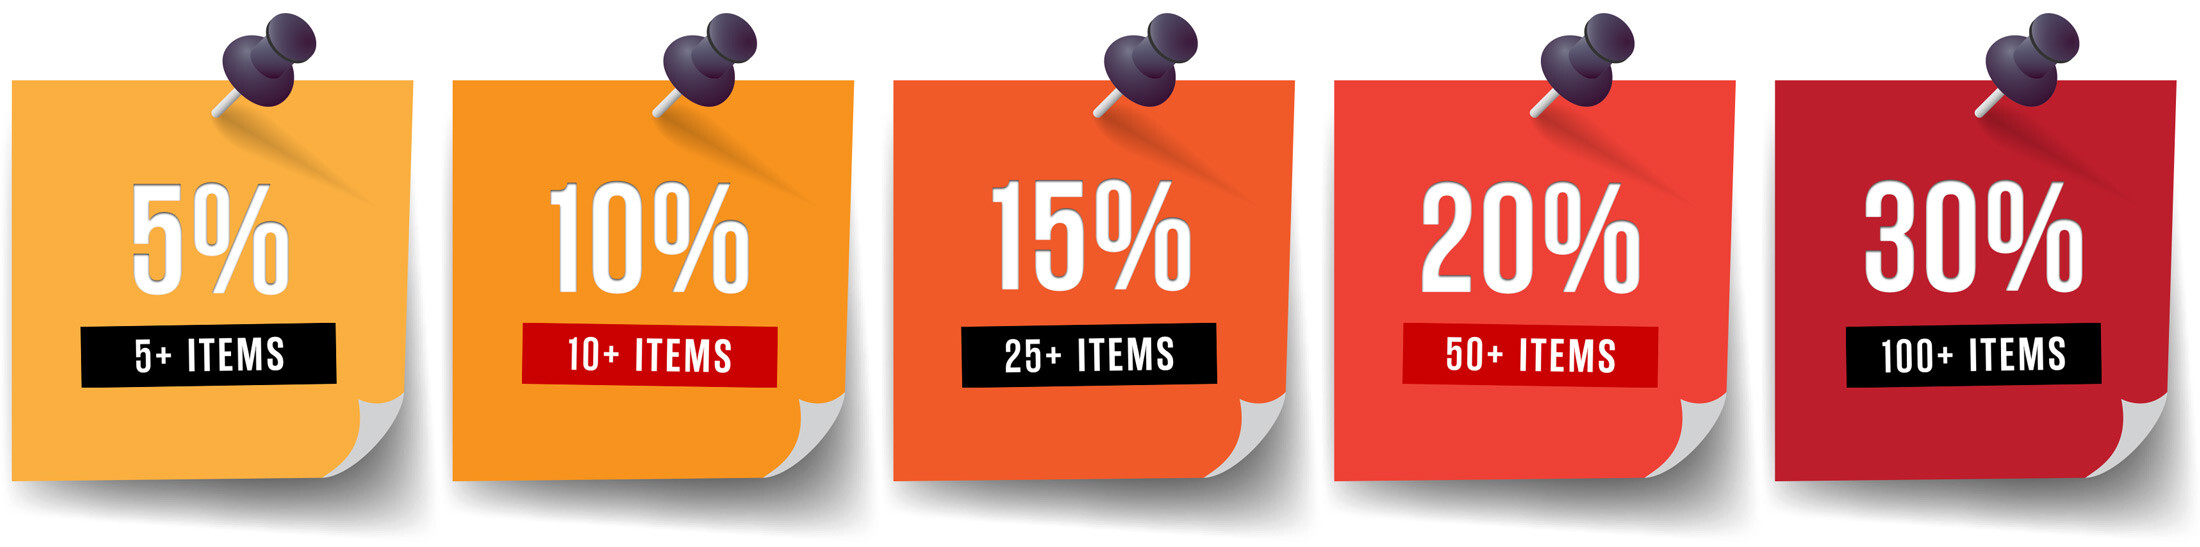 DISCOUNTS: 5% for 5+ items, 10% for 10+ items, 15% for 25+ items, 20% for 50+ items, 30% for 100+ items